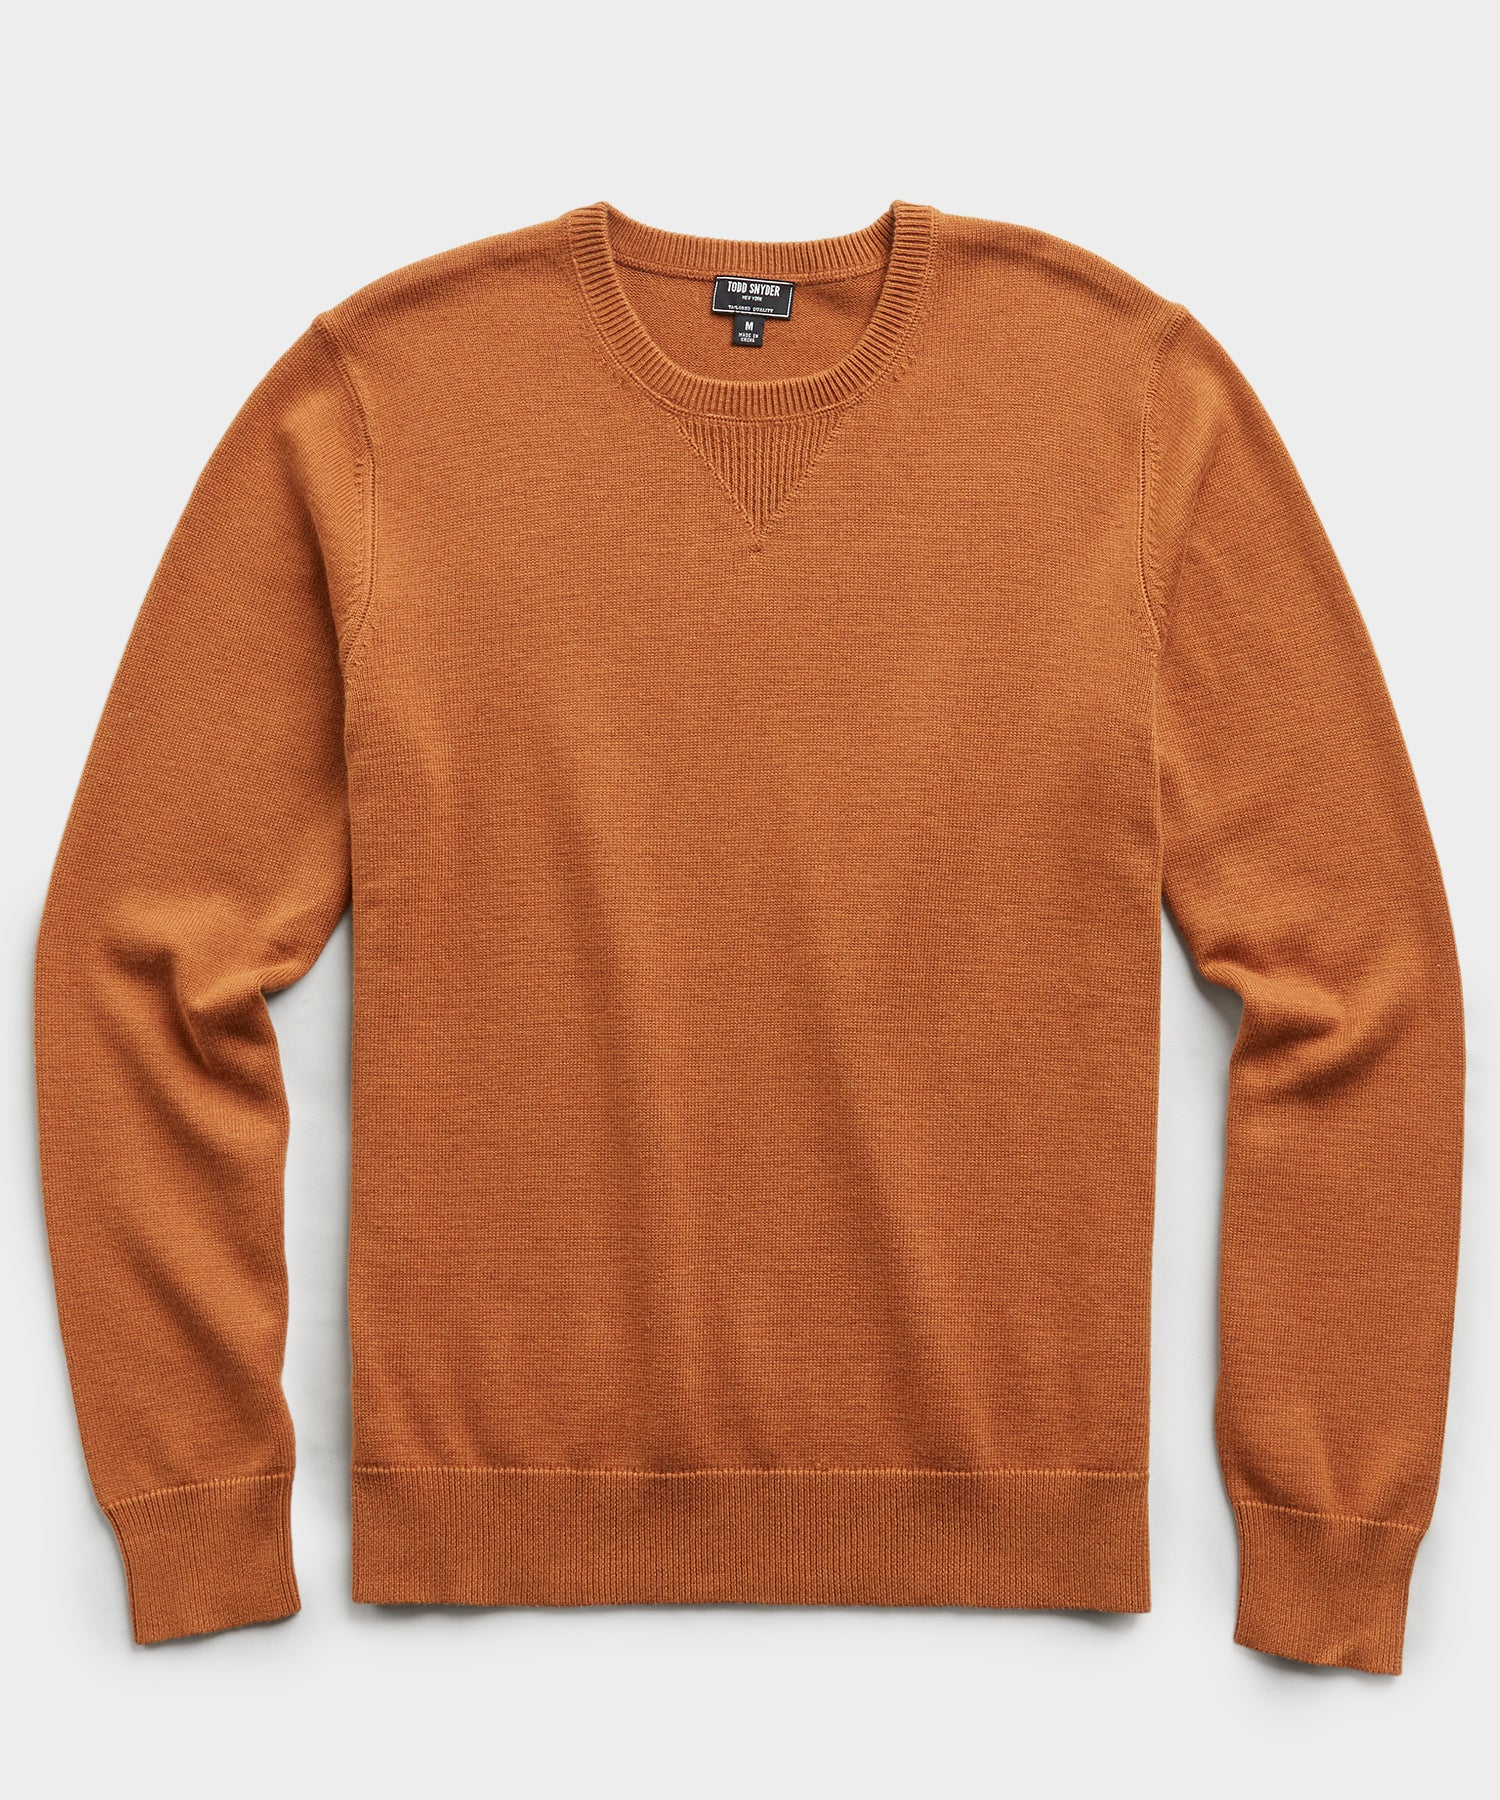 Cotton Cashmere Sweater in Chestnut